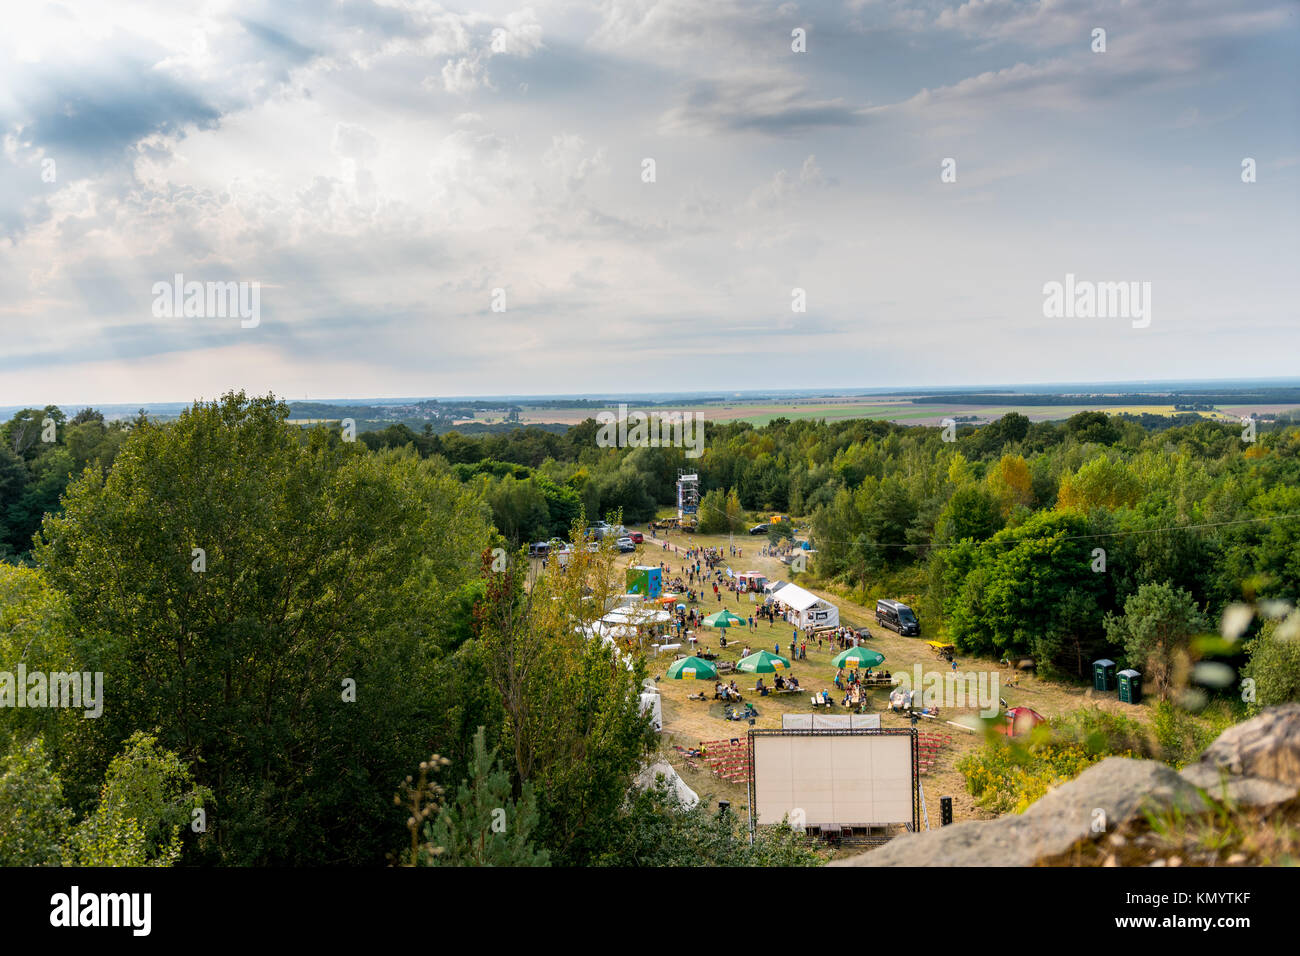 Zoo Palast Roter Teppich Filmfestival Stockfotos And Filmfestival Bilder Alamy